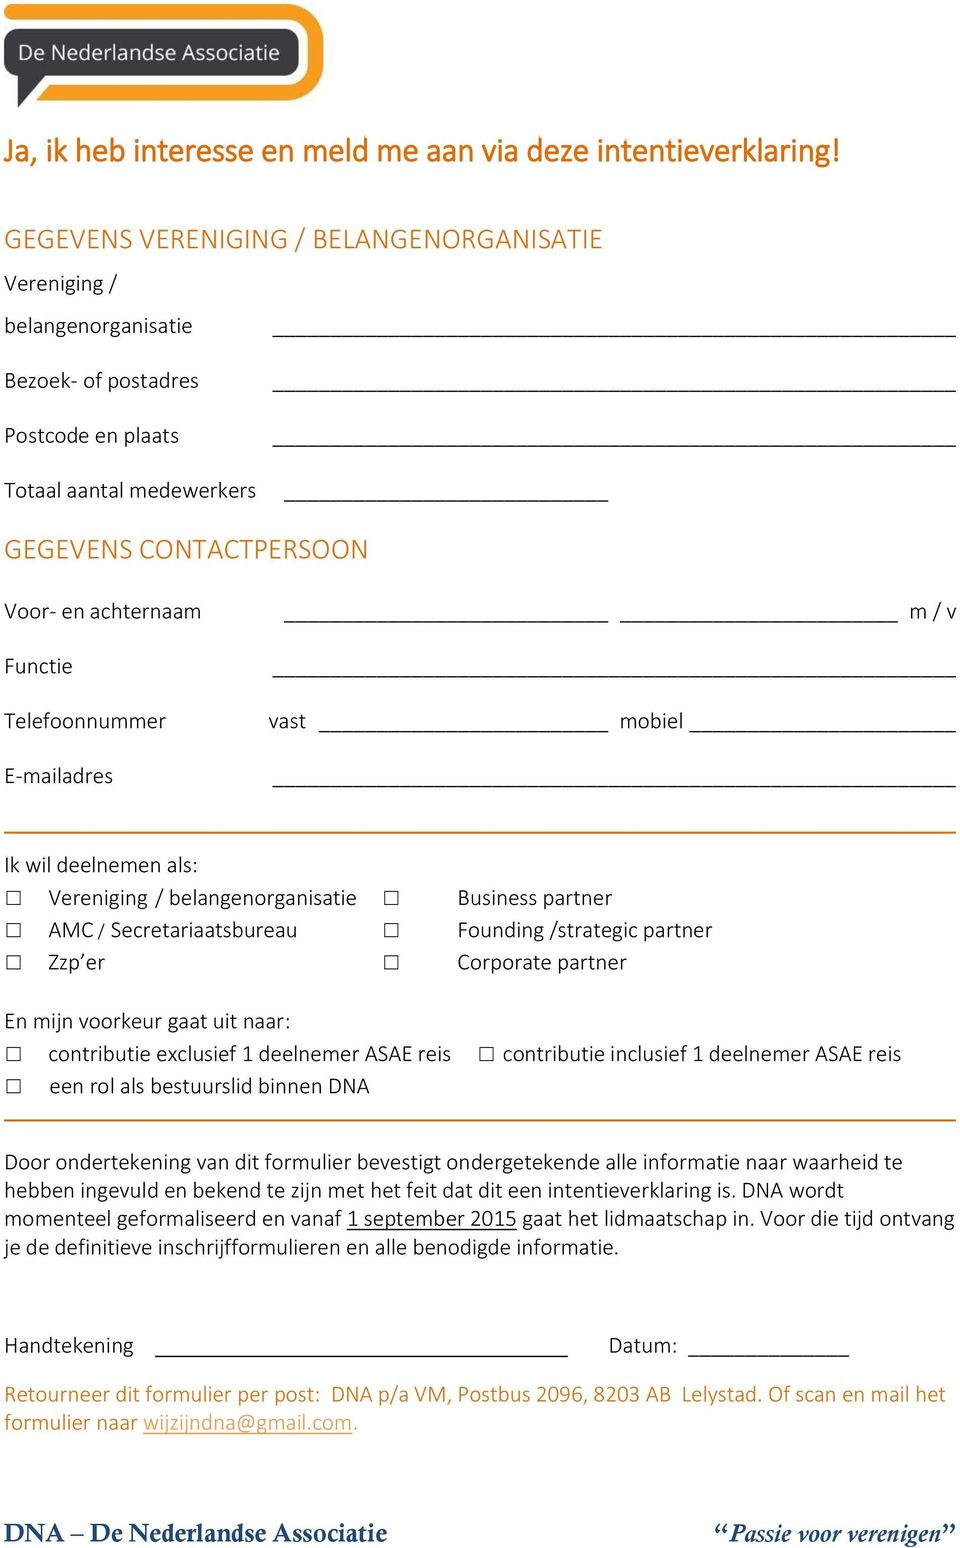 Telefoonnummer E-mailadres m / v vast mobiel Ik wil deelnemen als: Vereniging / belangenorganisatie Business partner AMC / Secretariaatsbureau Founding /strategic partner Zzp er Corporate partner En